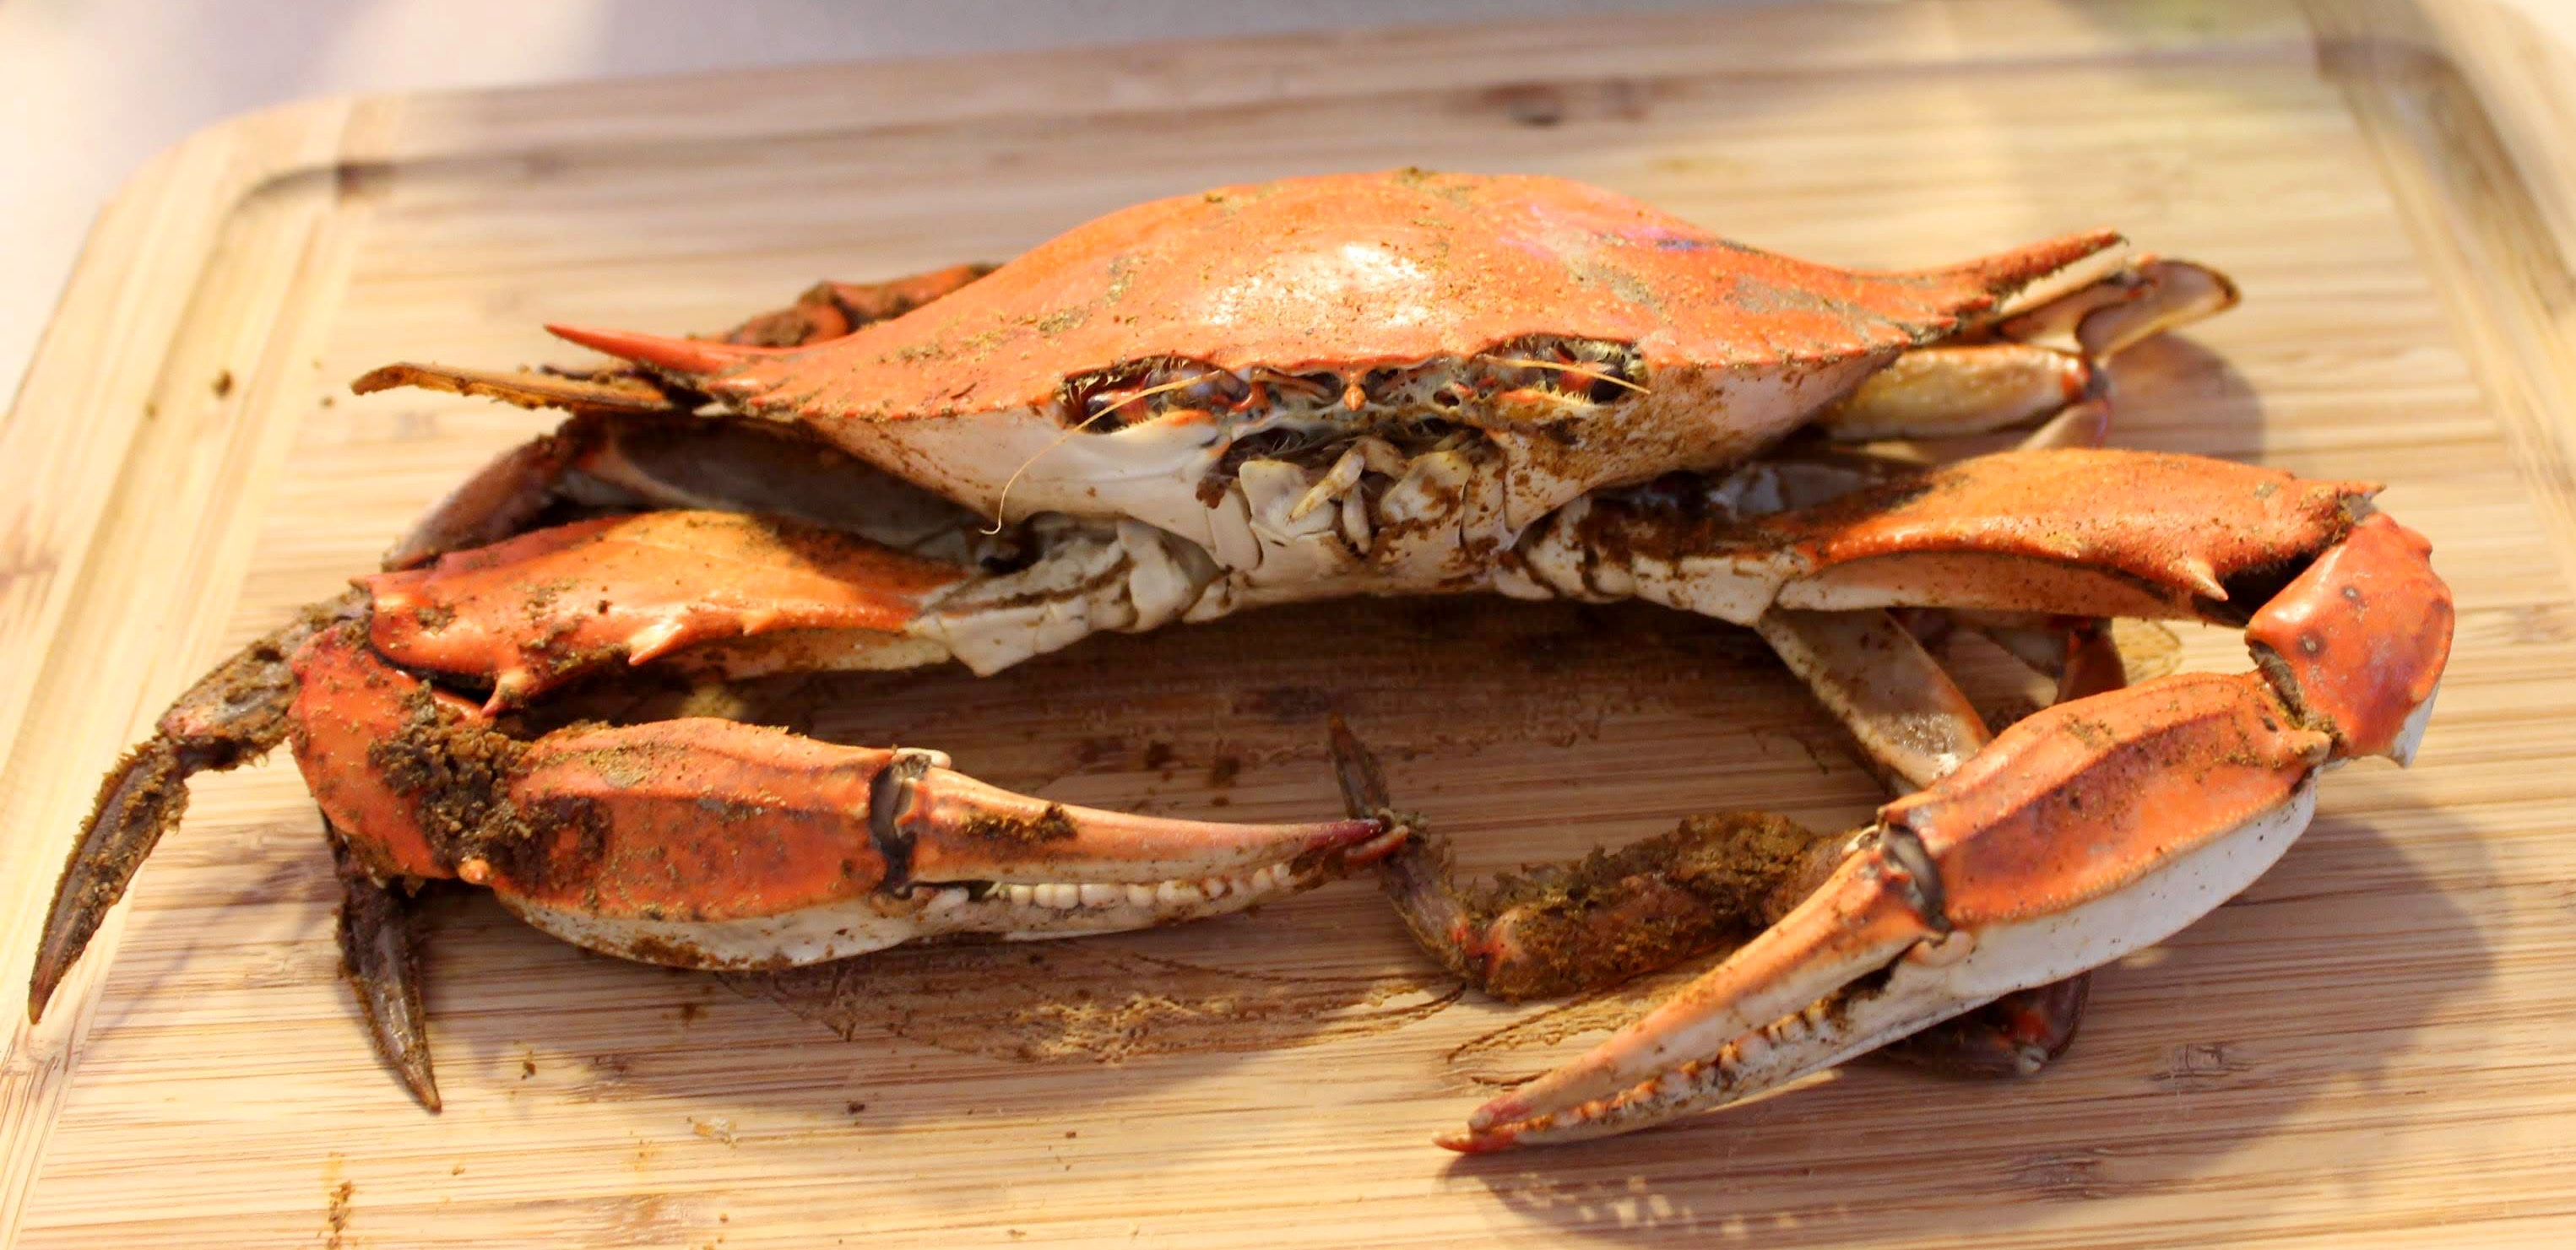 steamed-crab-4089340.jpg